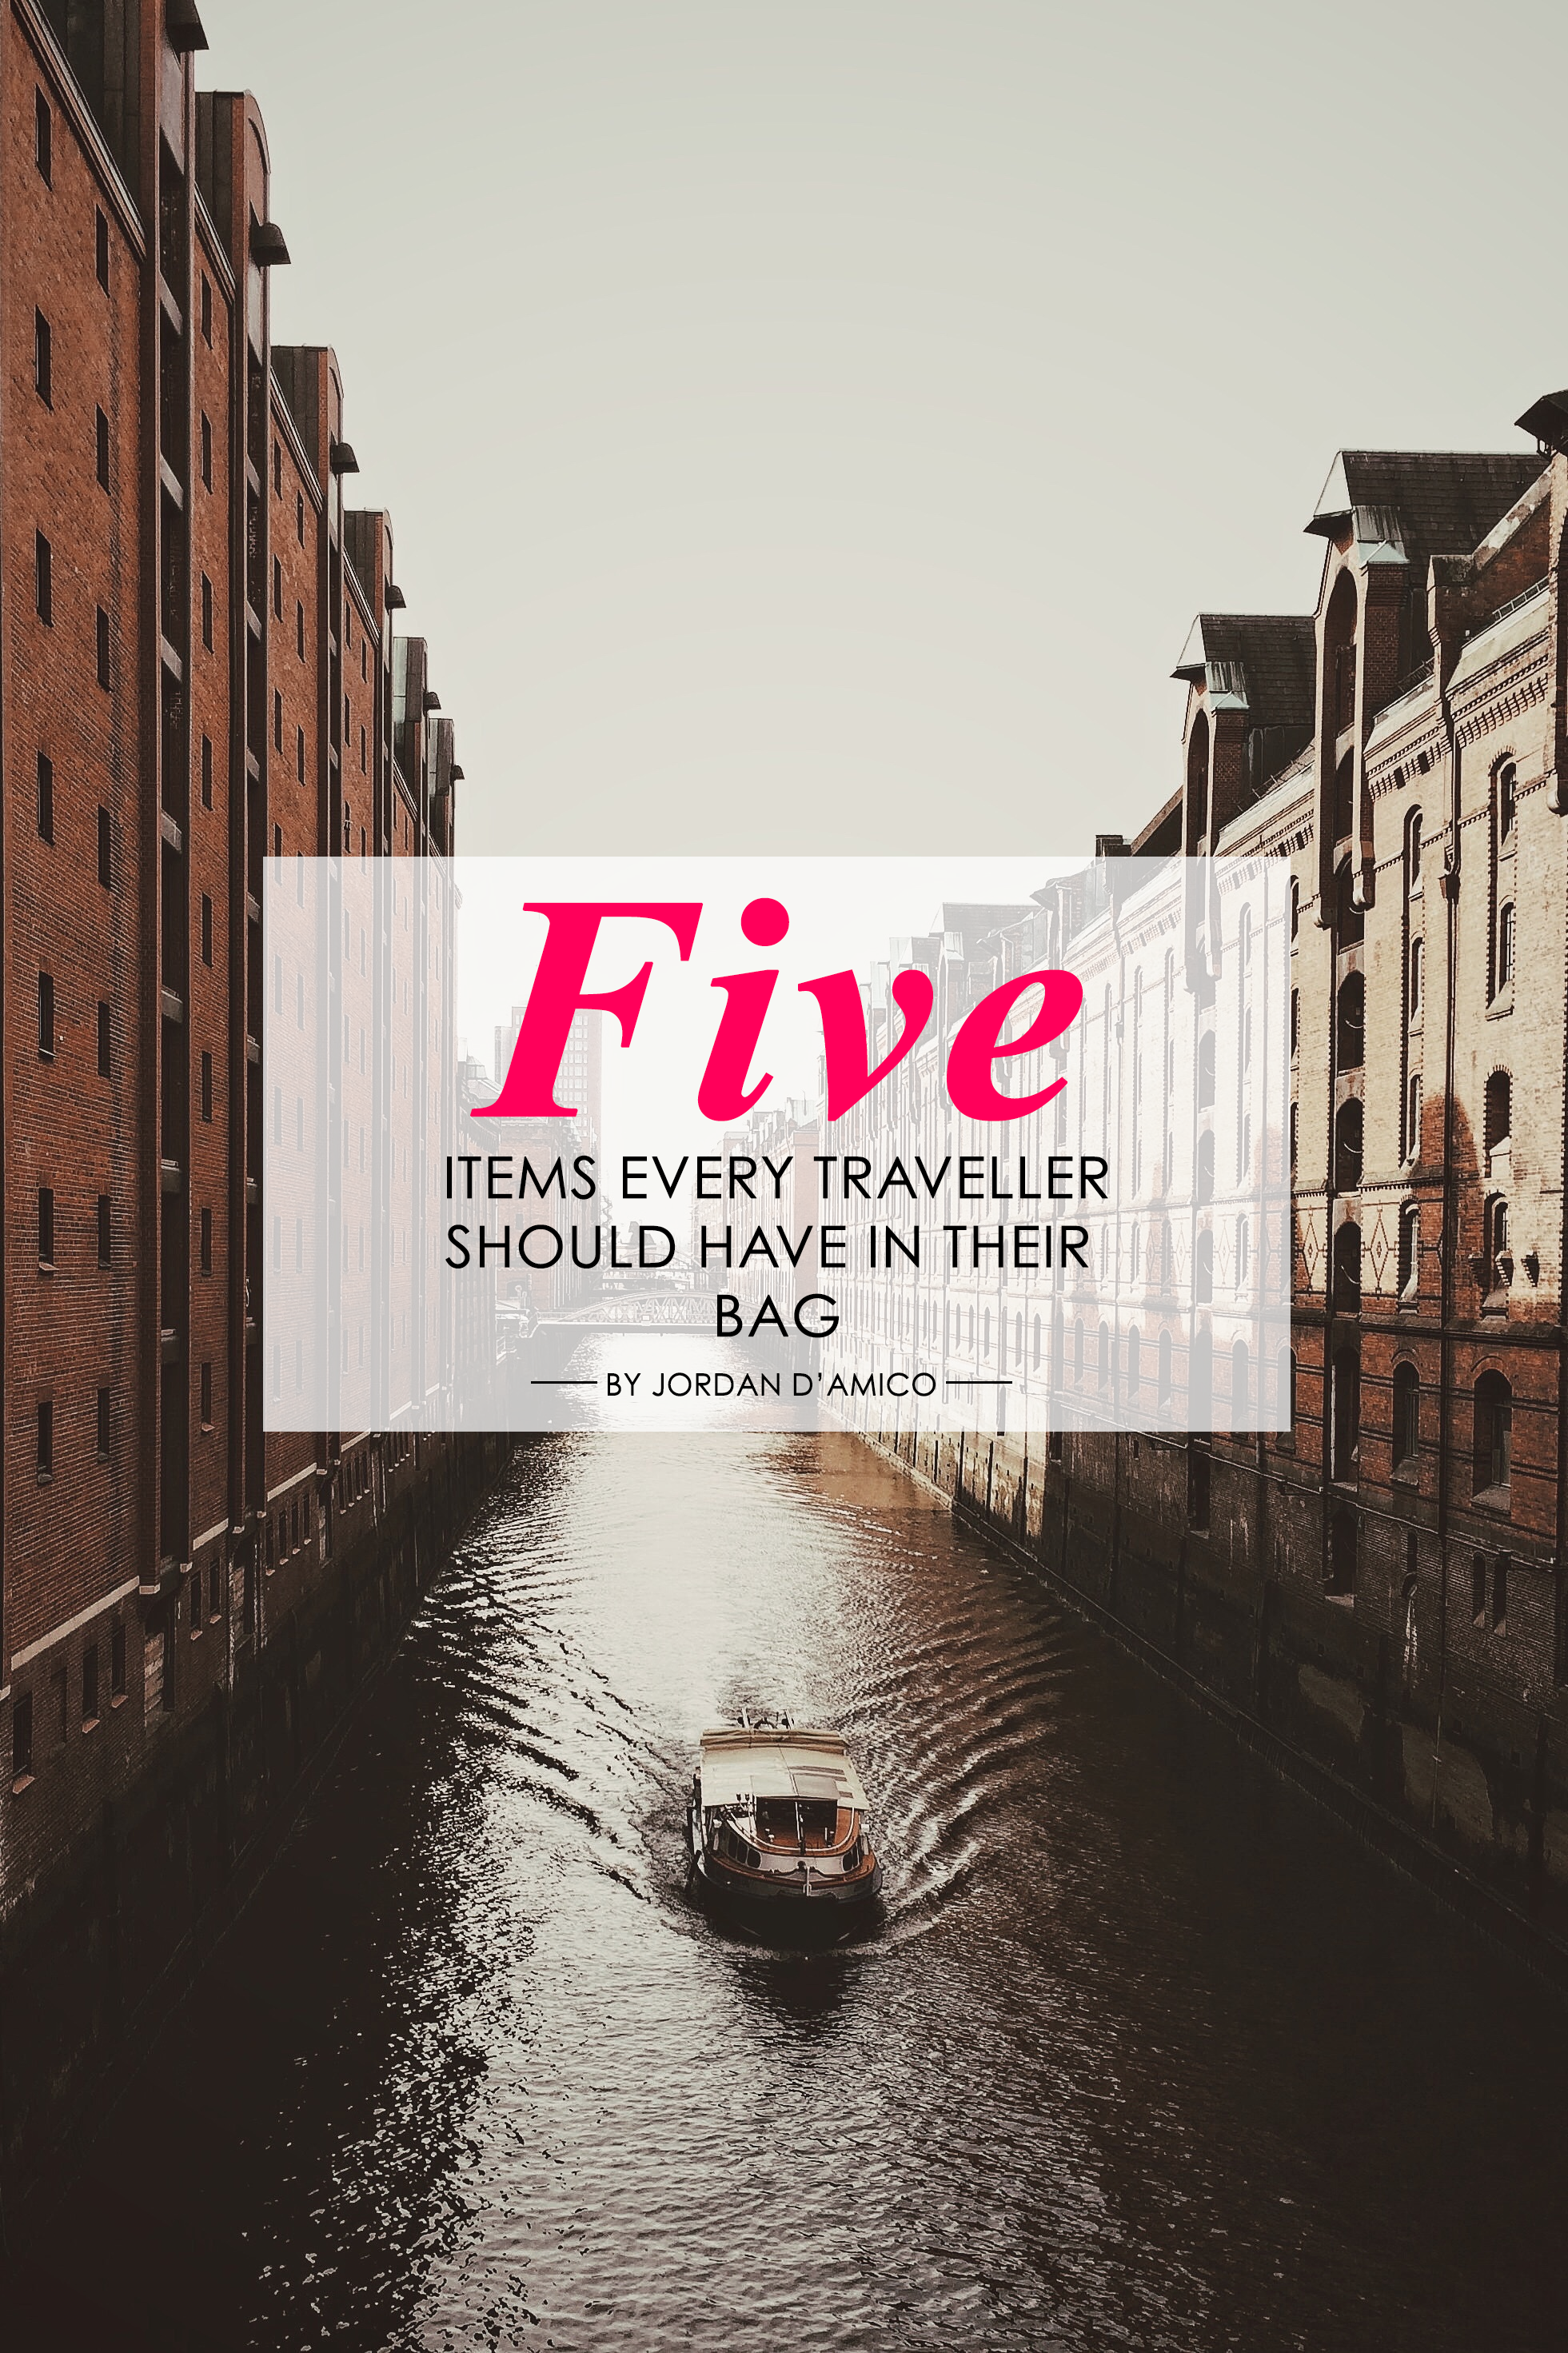 5 items Every Traveller Should Have In Their Bag